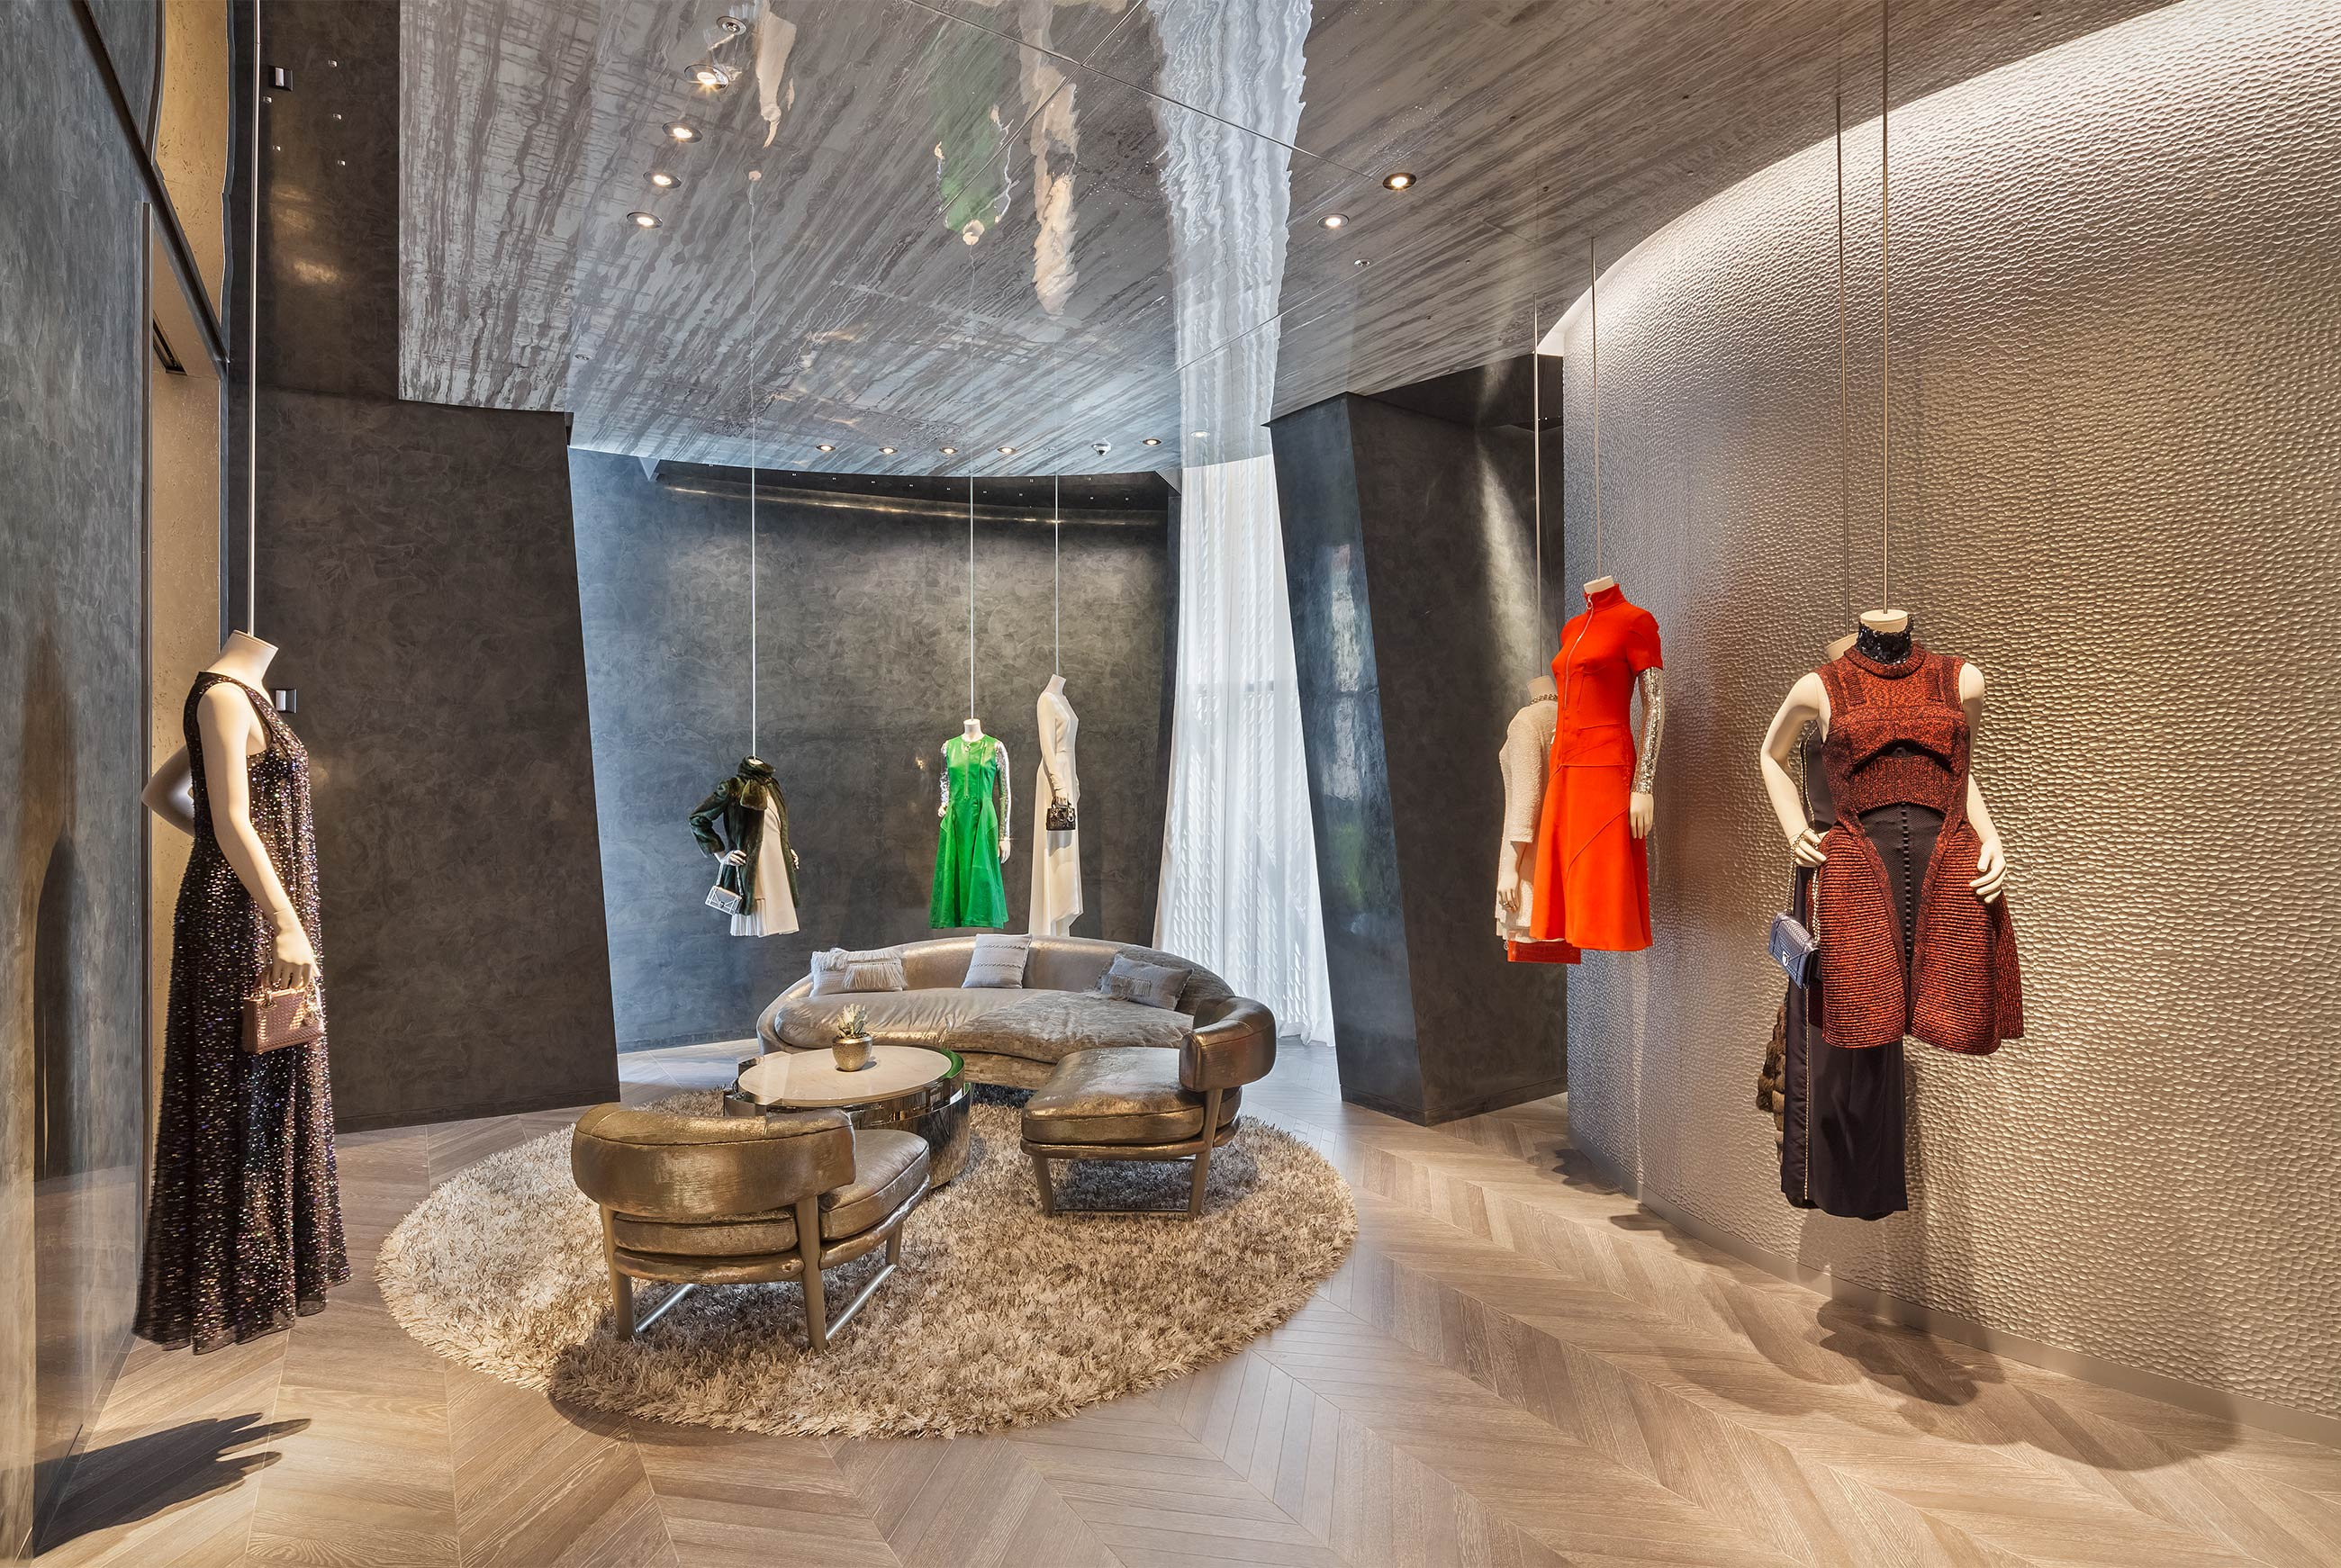 c0d729b58d Curves and counter-curves at Dior's newest address in Seoul ...